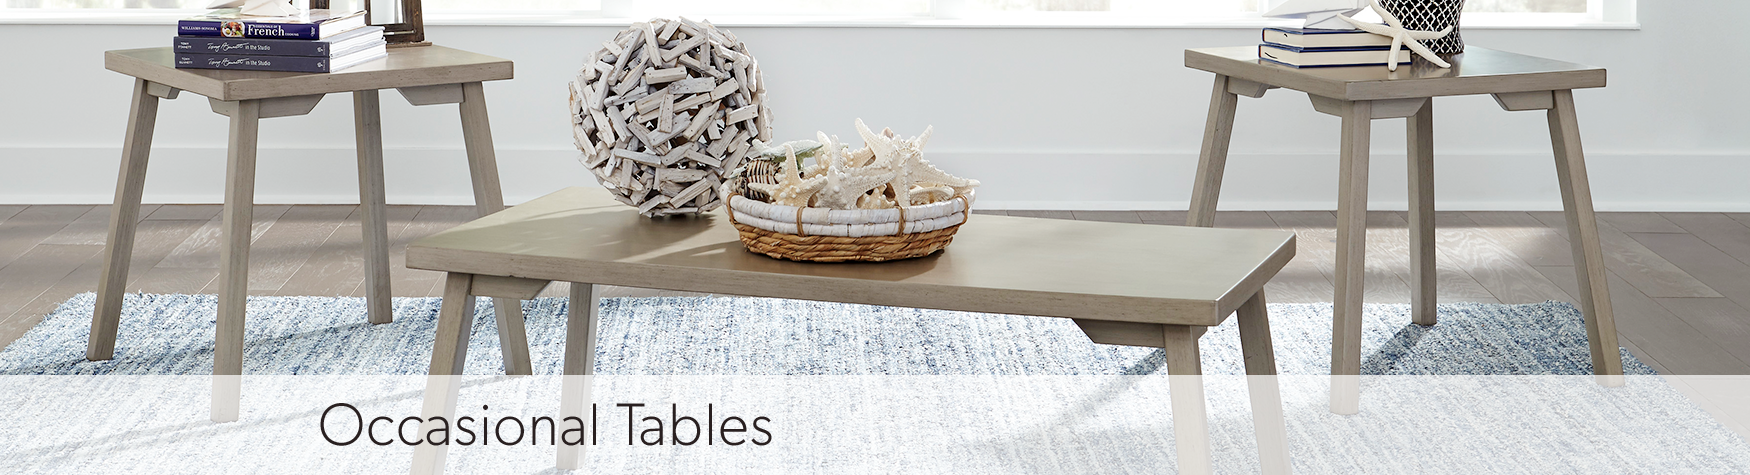 occassionals-tables-banner.png